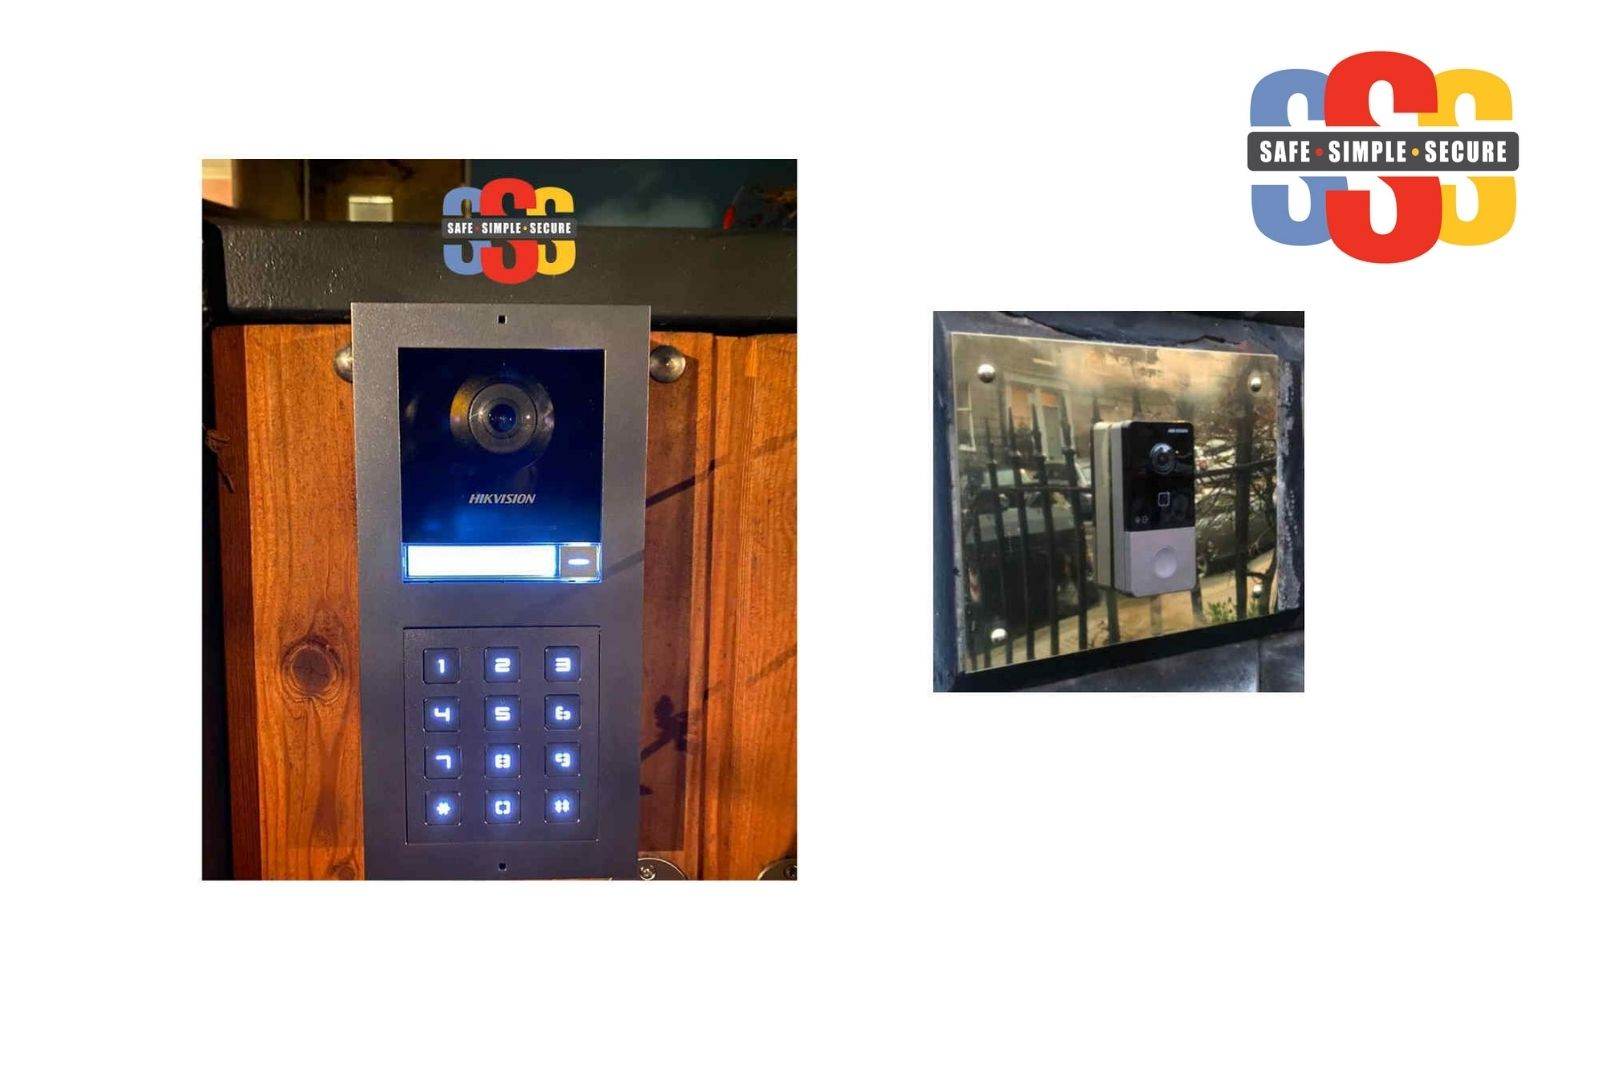 Safe Simple Secure's video door entry systems